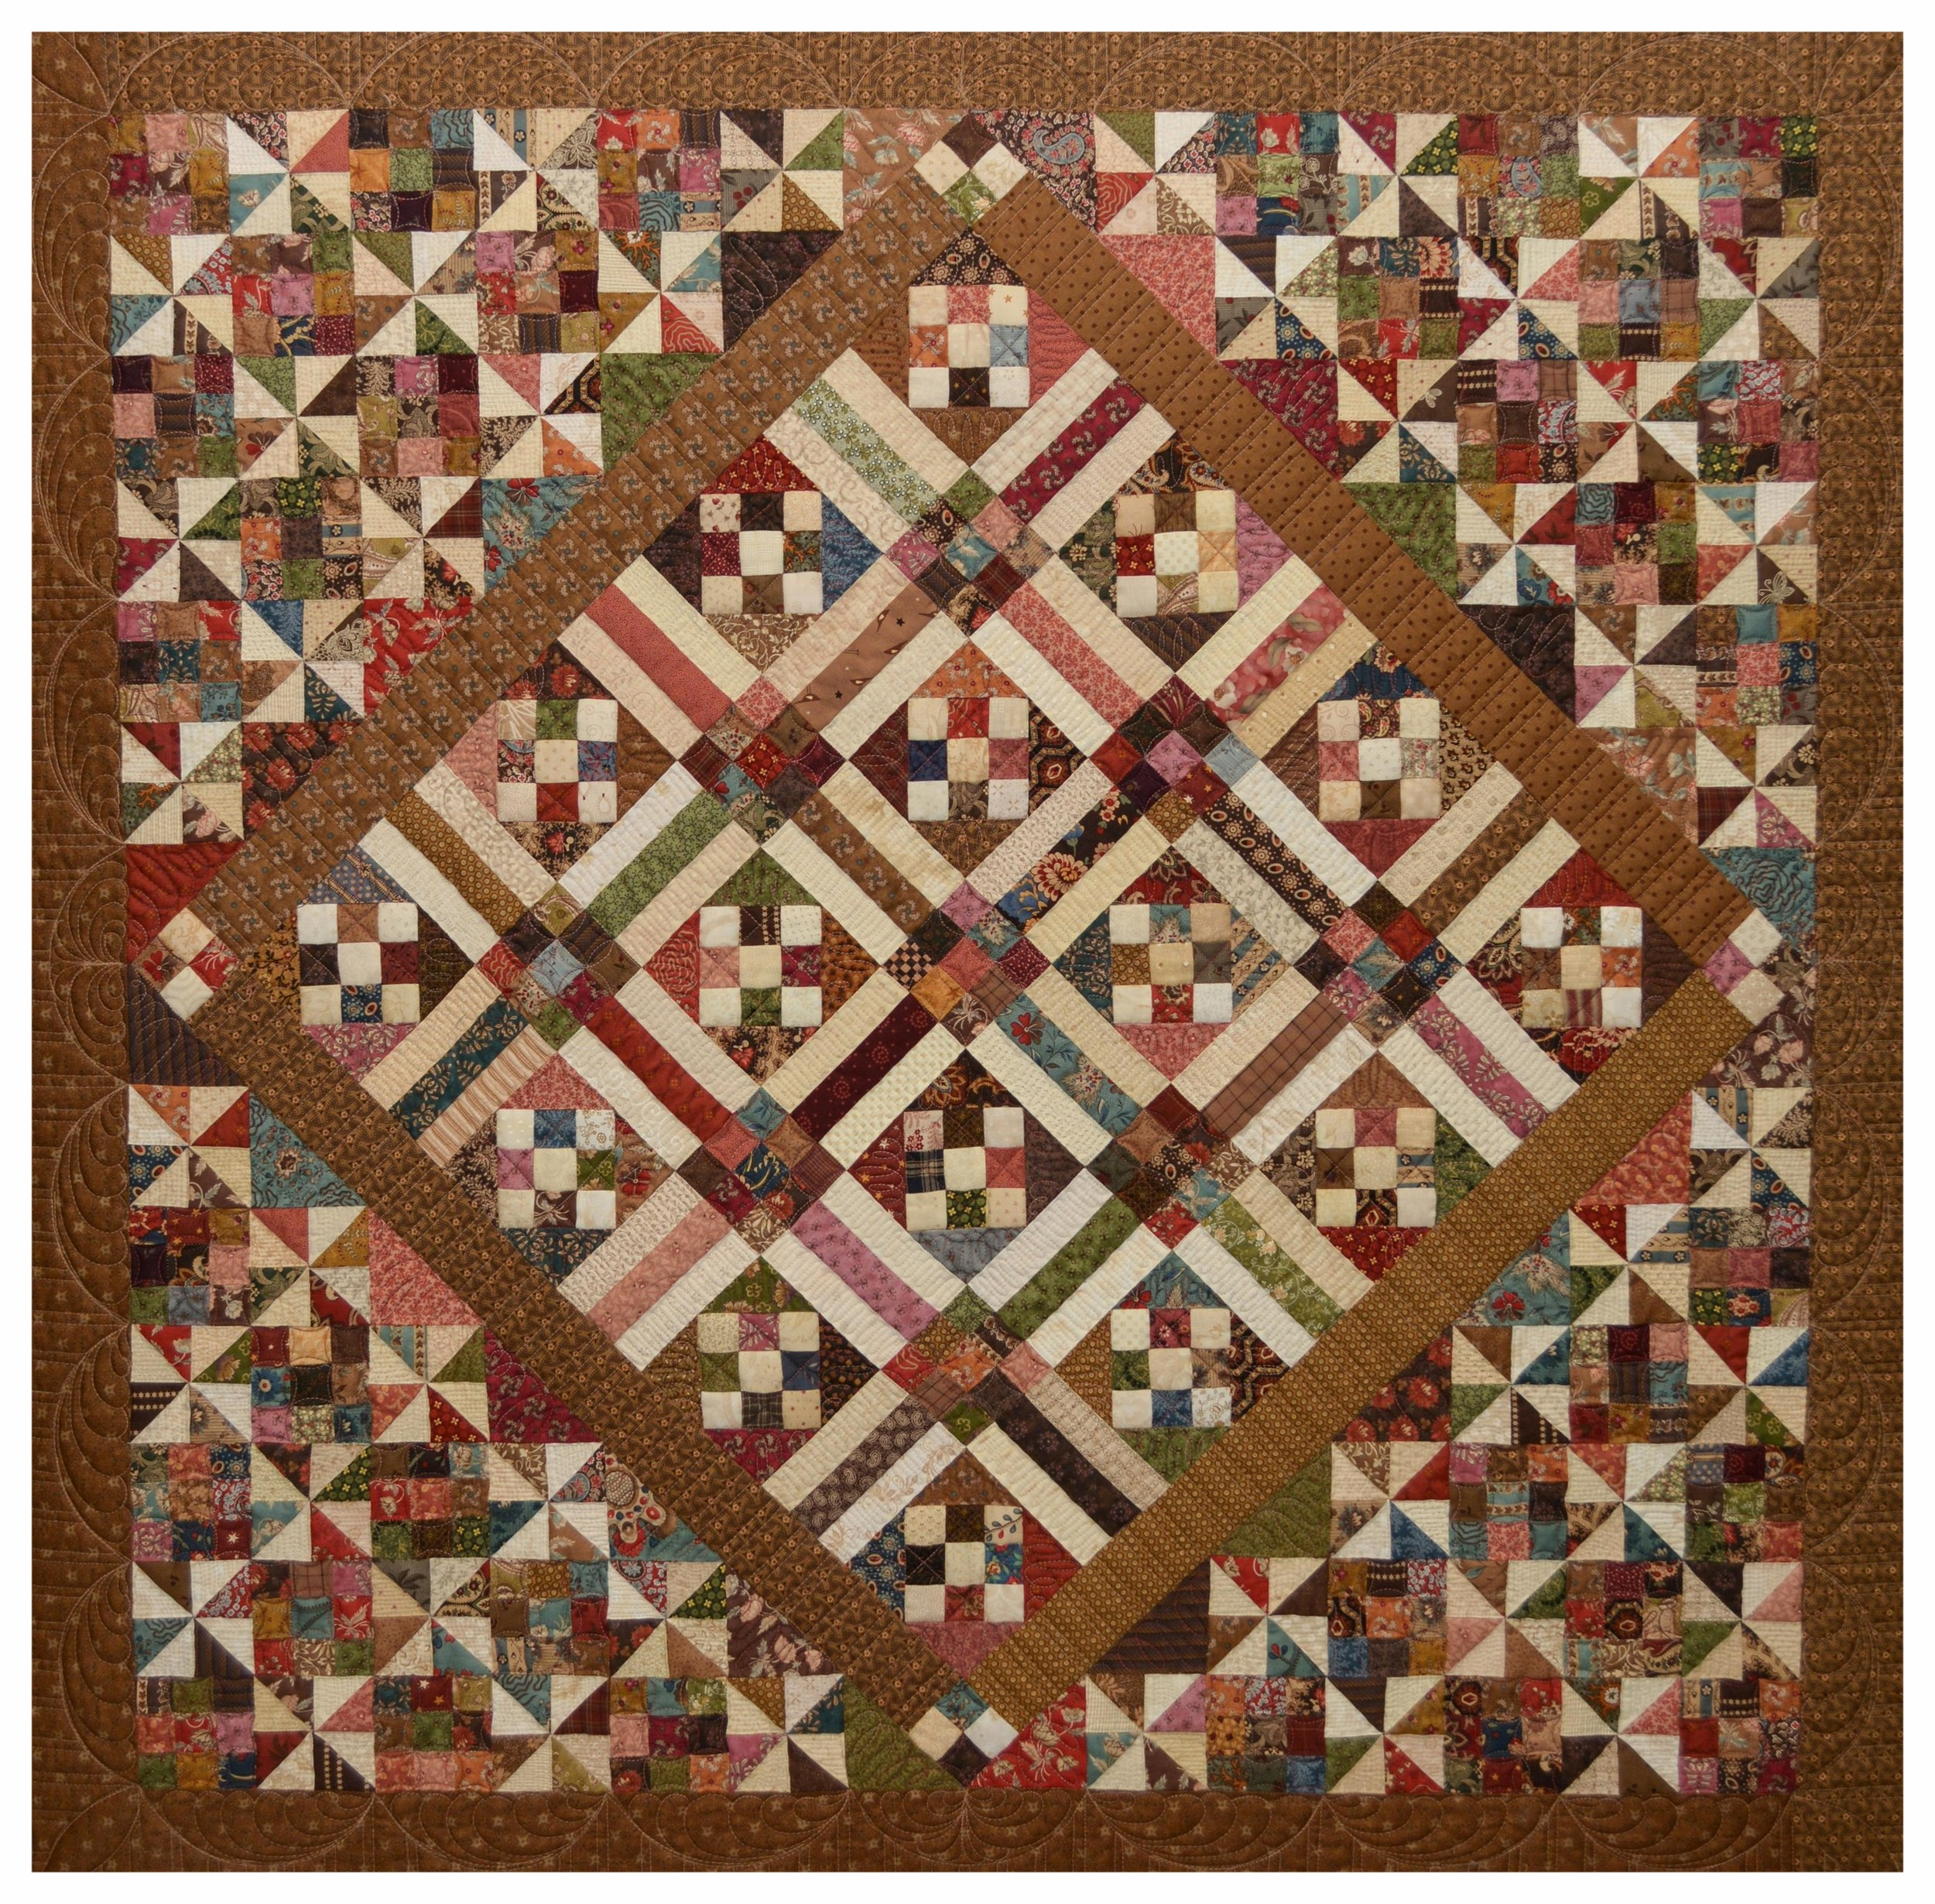 ORIGINAL PATTERNS - EACH PATTERN IN OUR INVENTORY HAS BEEN DESIGNED BY MANON HUNT, FOUNDER OF MOM & ME QUILTING CO. RECIEVE THE DIGITAL FILE IMMEDIATELY. OPTION FOR PAPER PATTERS.